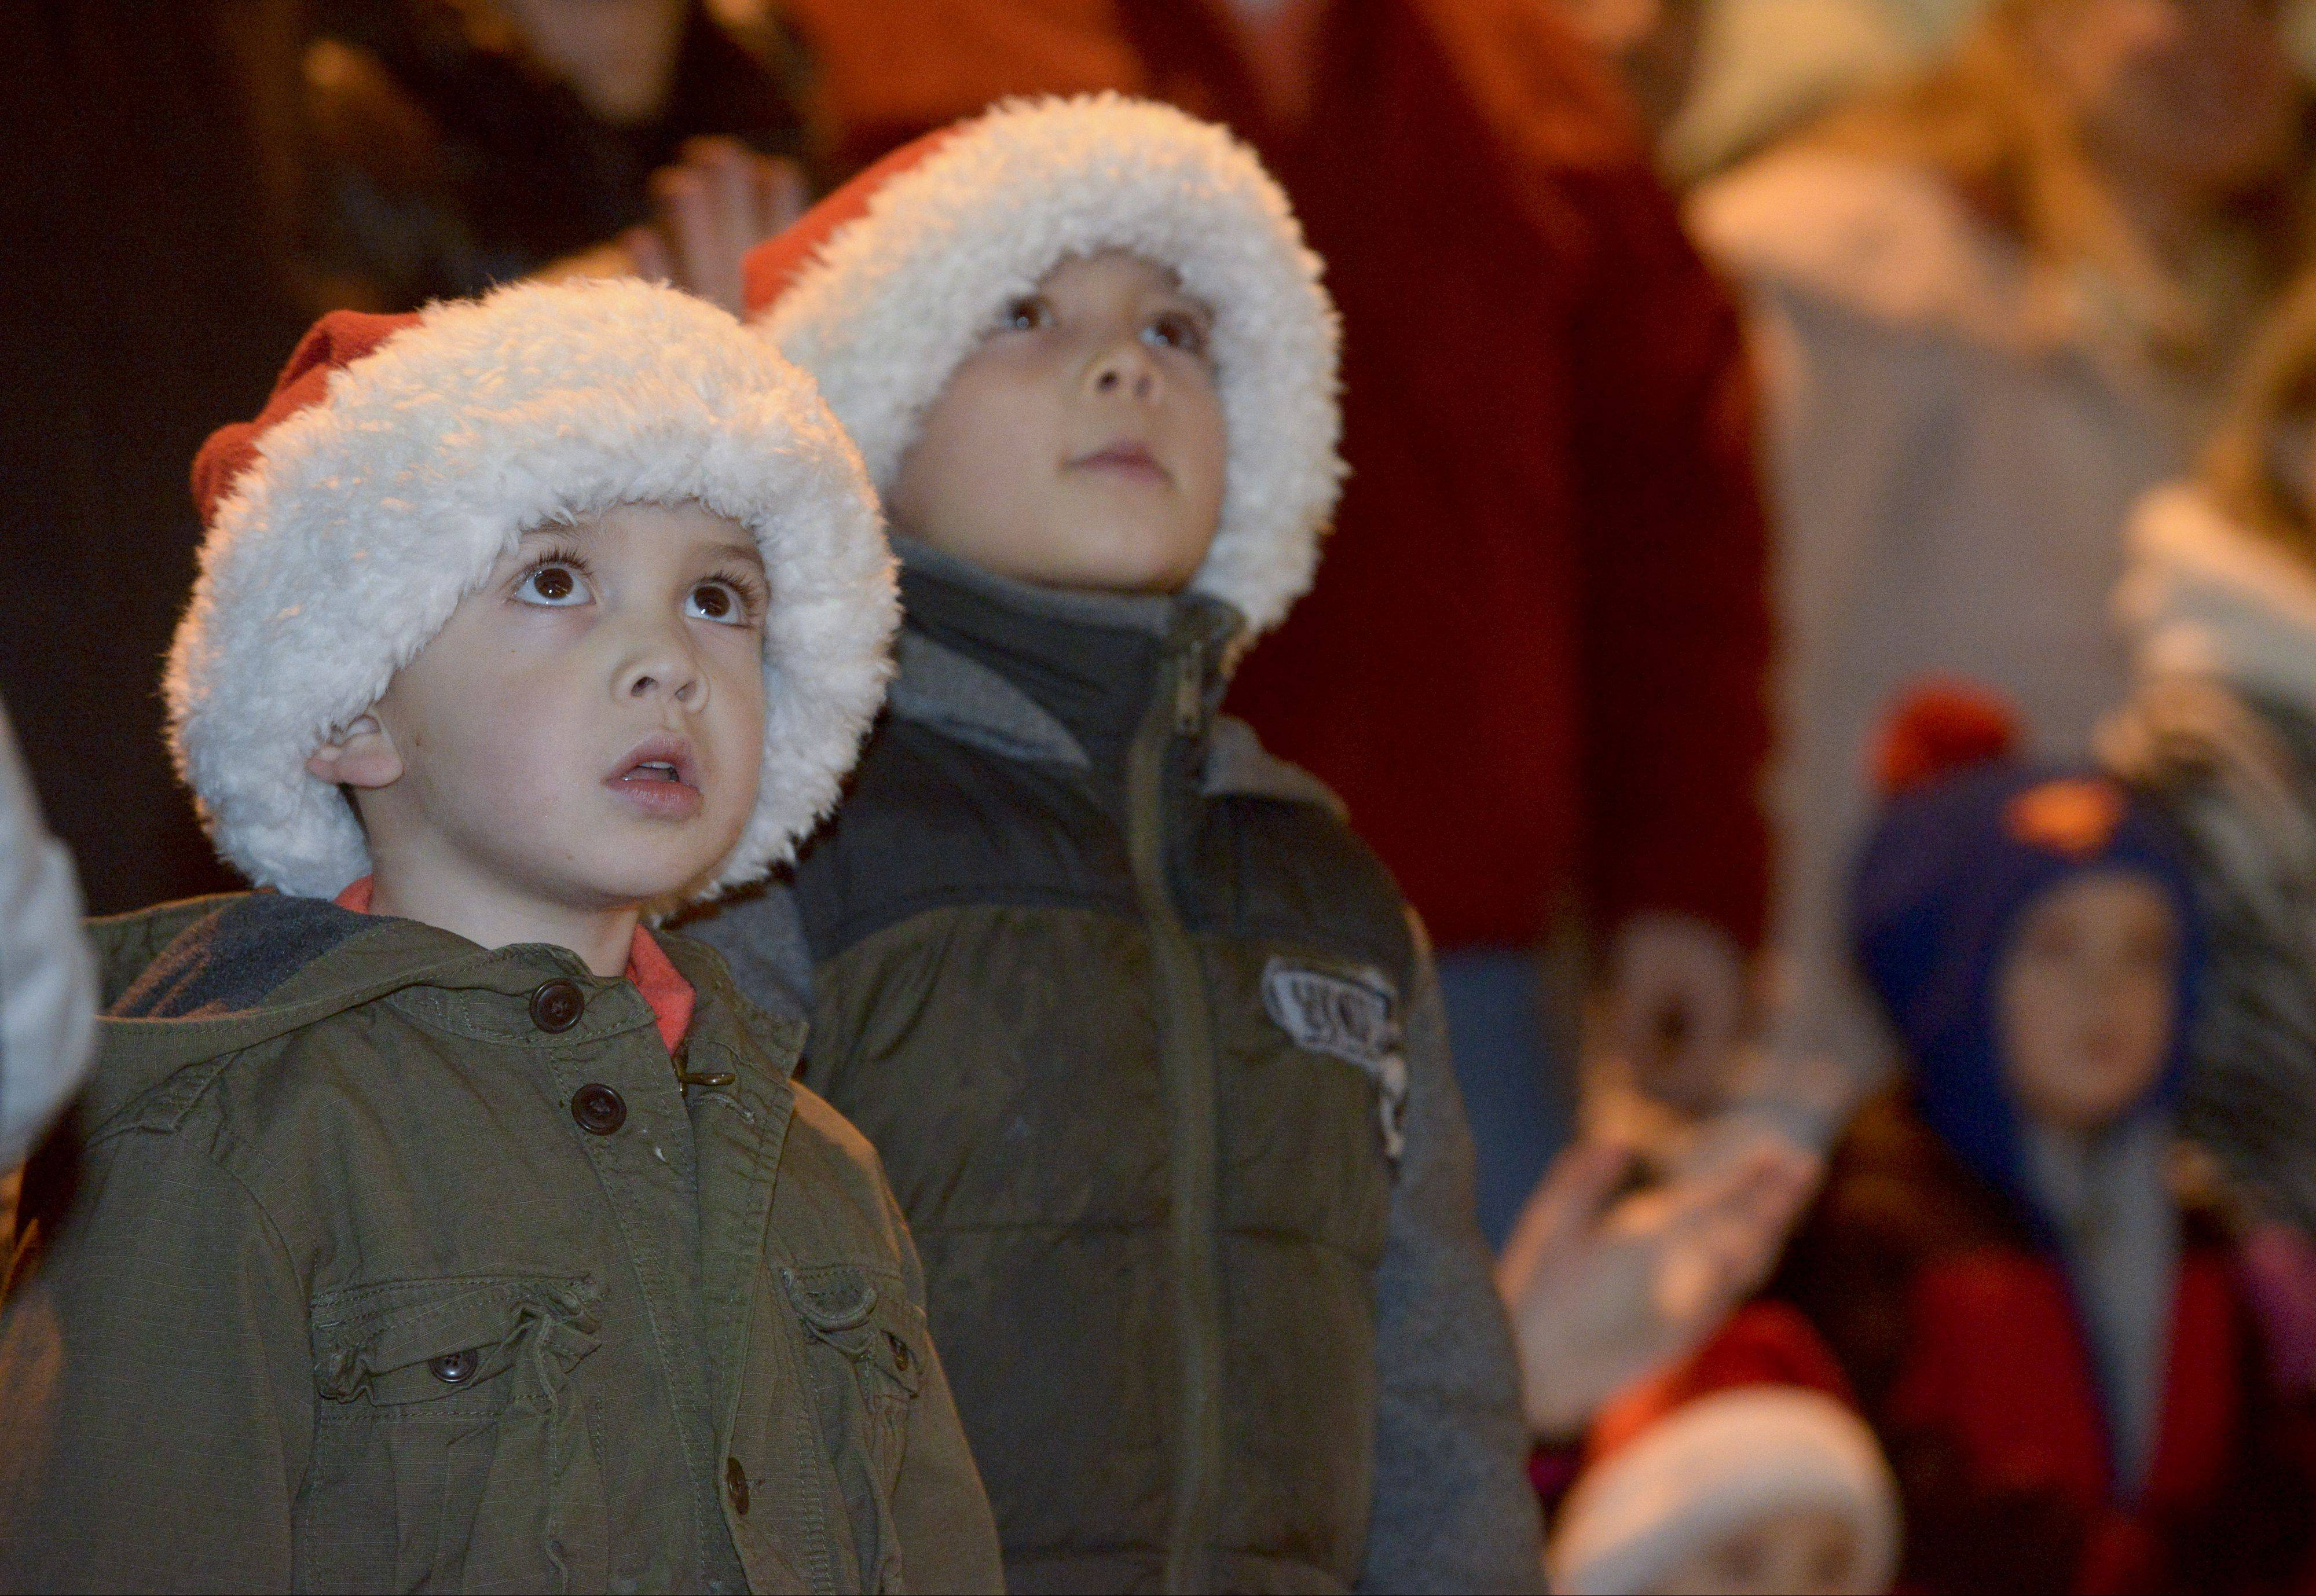 Connor Eilers, 4, and his brother Jacob, 6. of Naperville enjoy the Little Friends Parade of Lights Sunday in downtown Naperville.